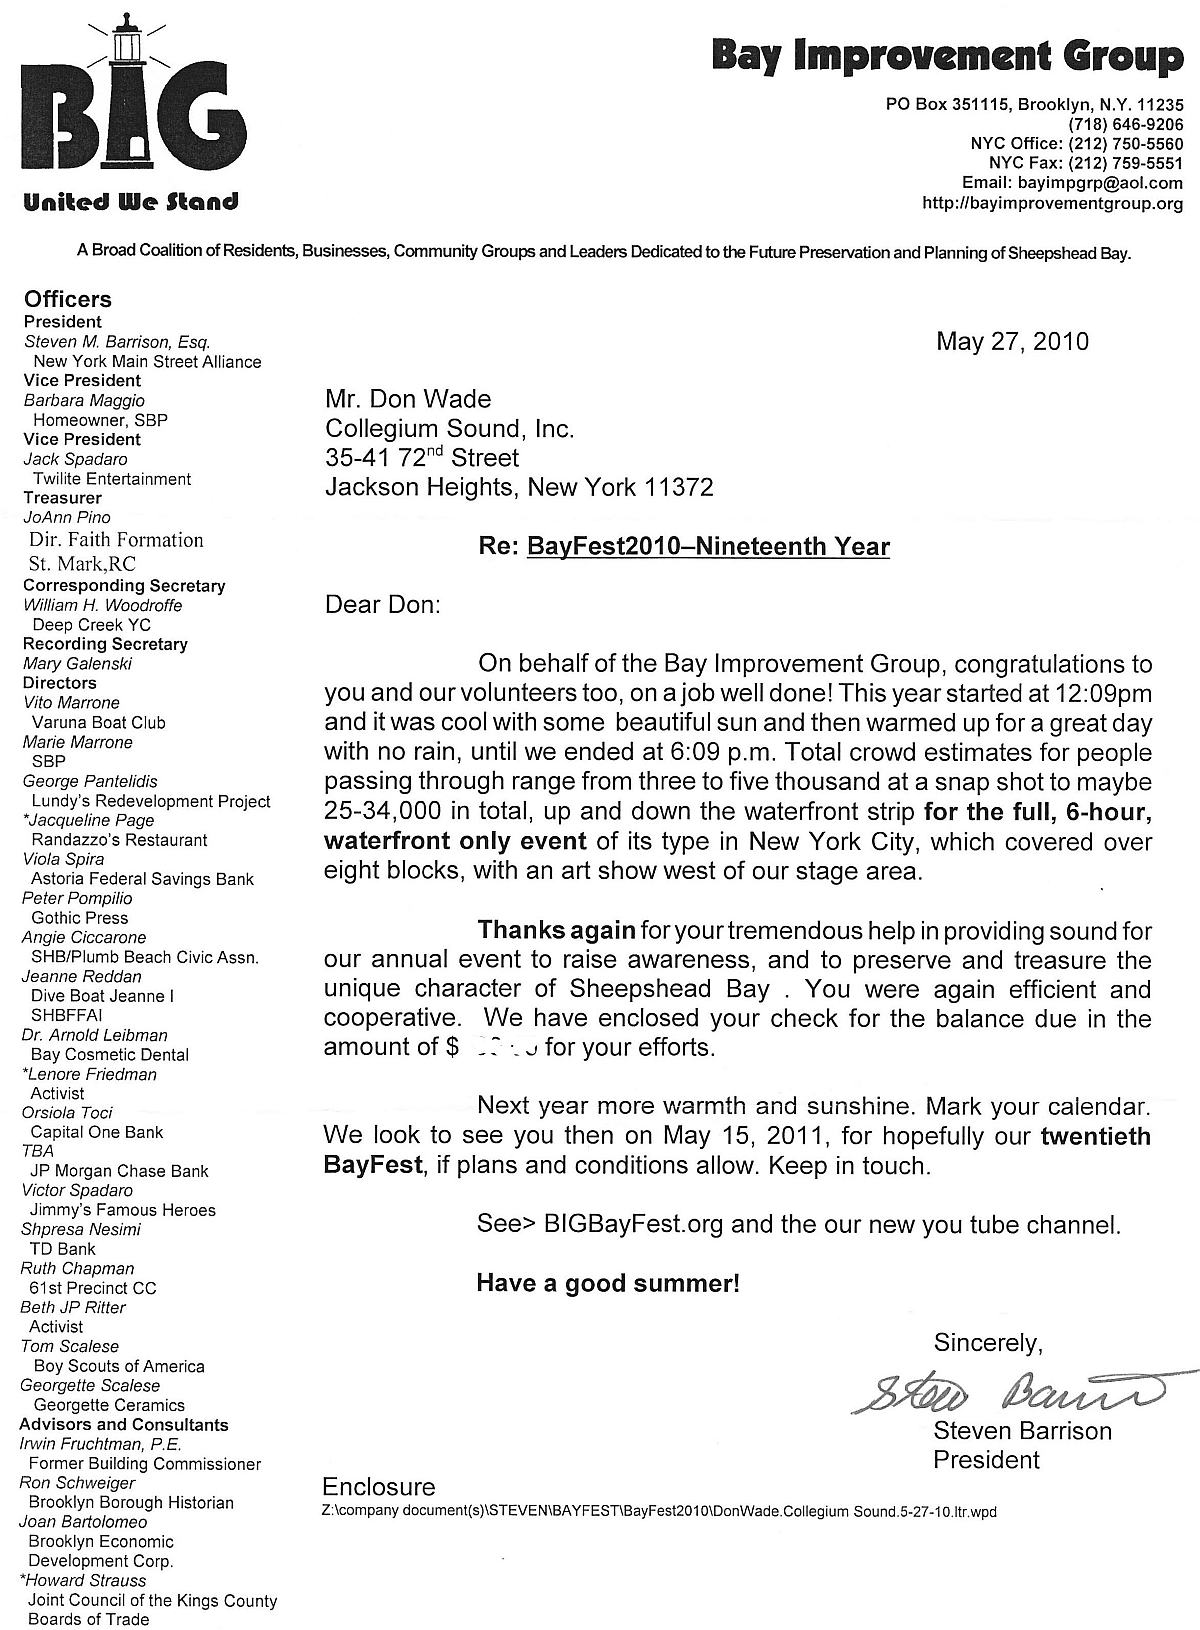 Bay Improvement Group Letter